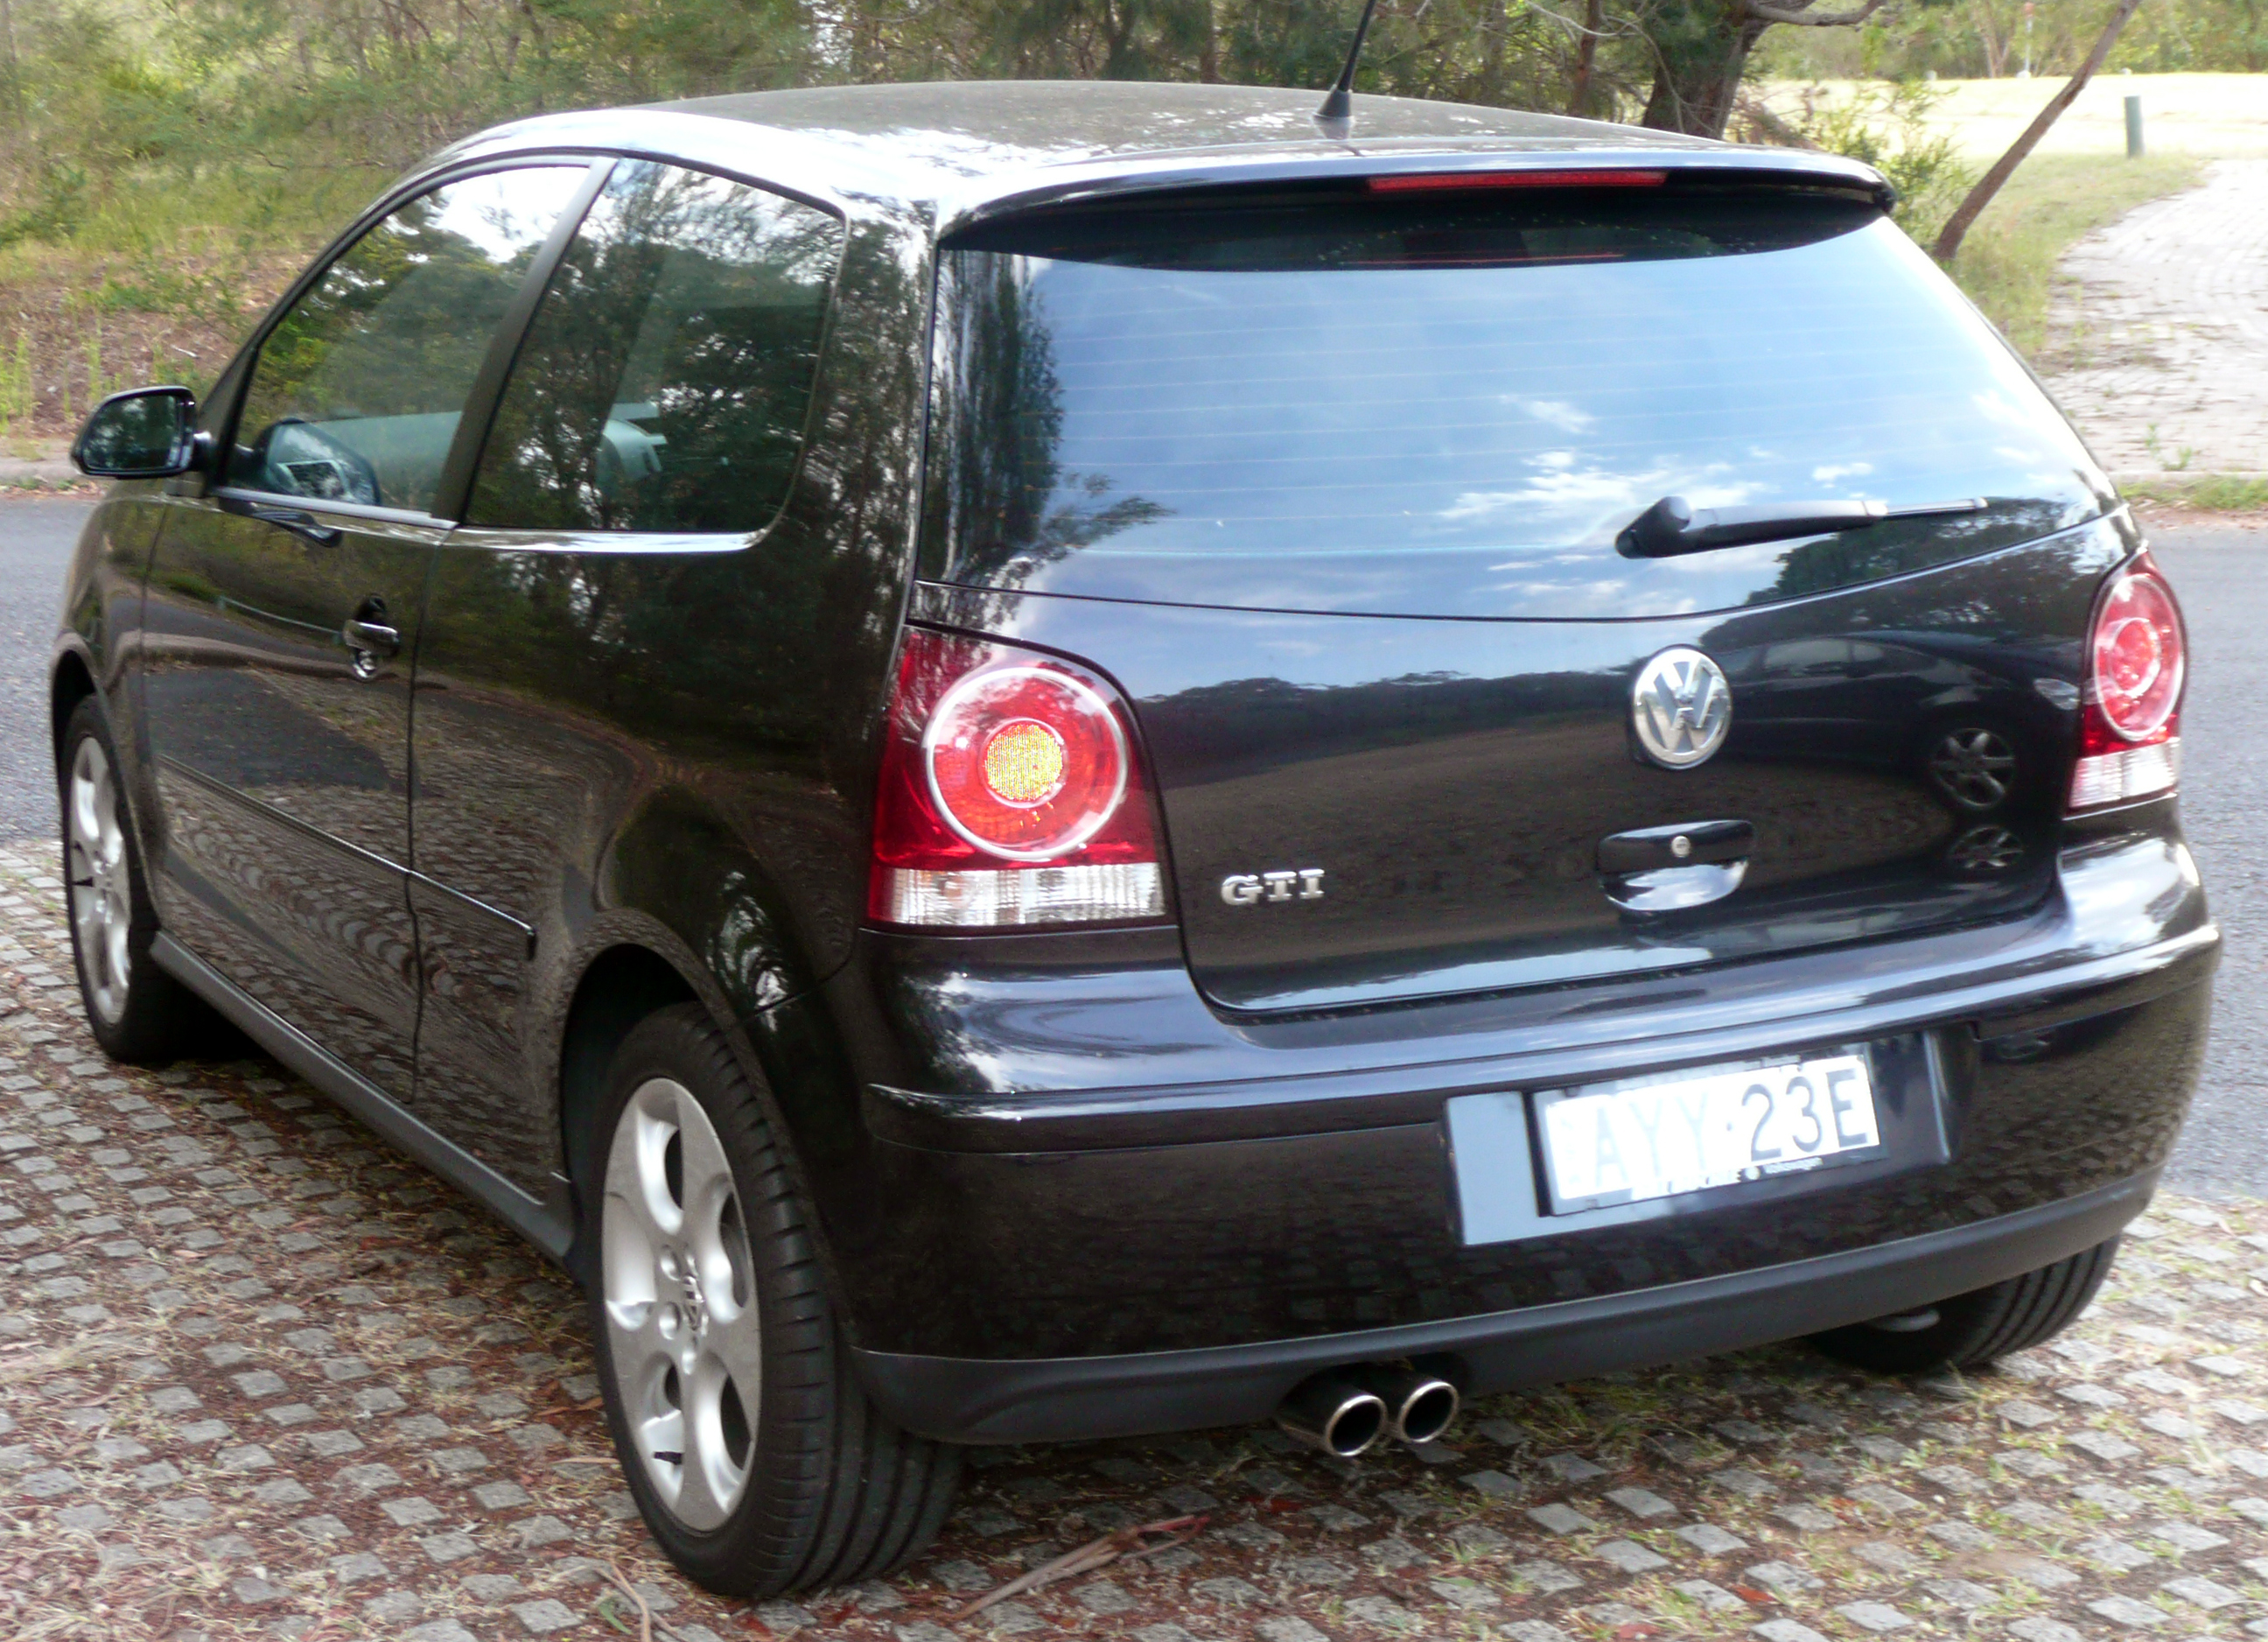 file 2005 2008 volkswagen polo 9n3 gti 3 door hatchback wikimedia commons. Black Bedroom Furniture Sets. Home Design Ideas